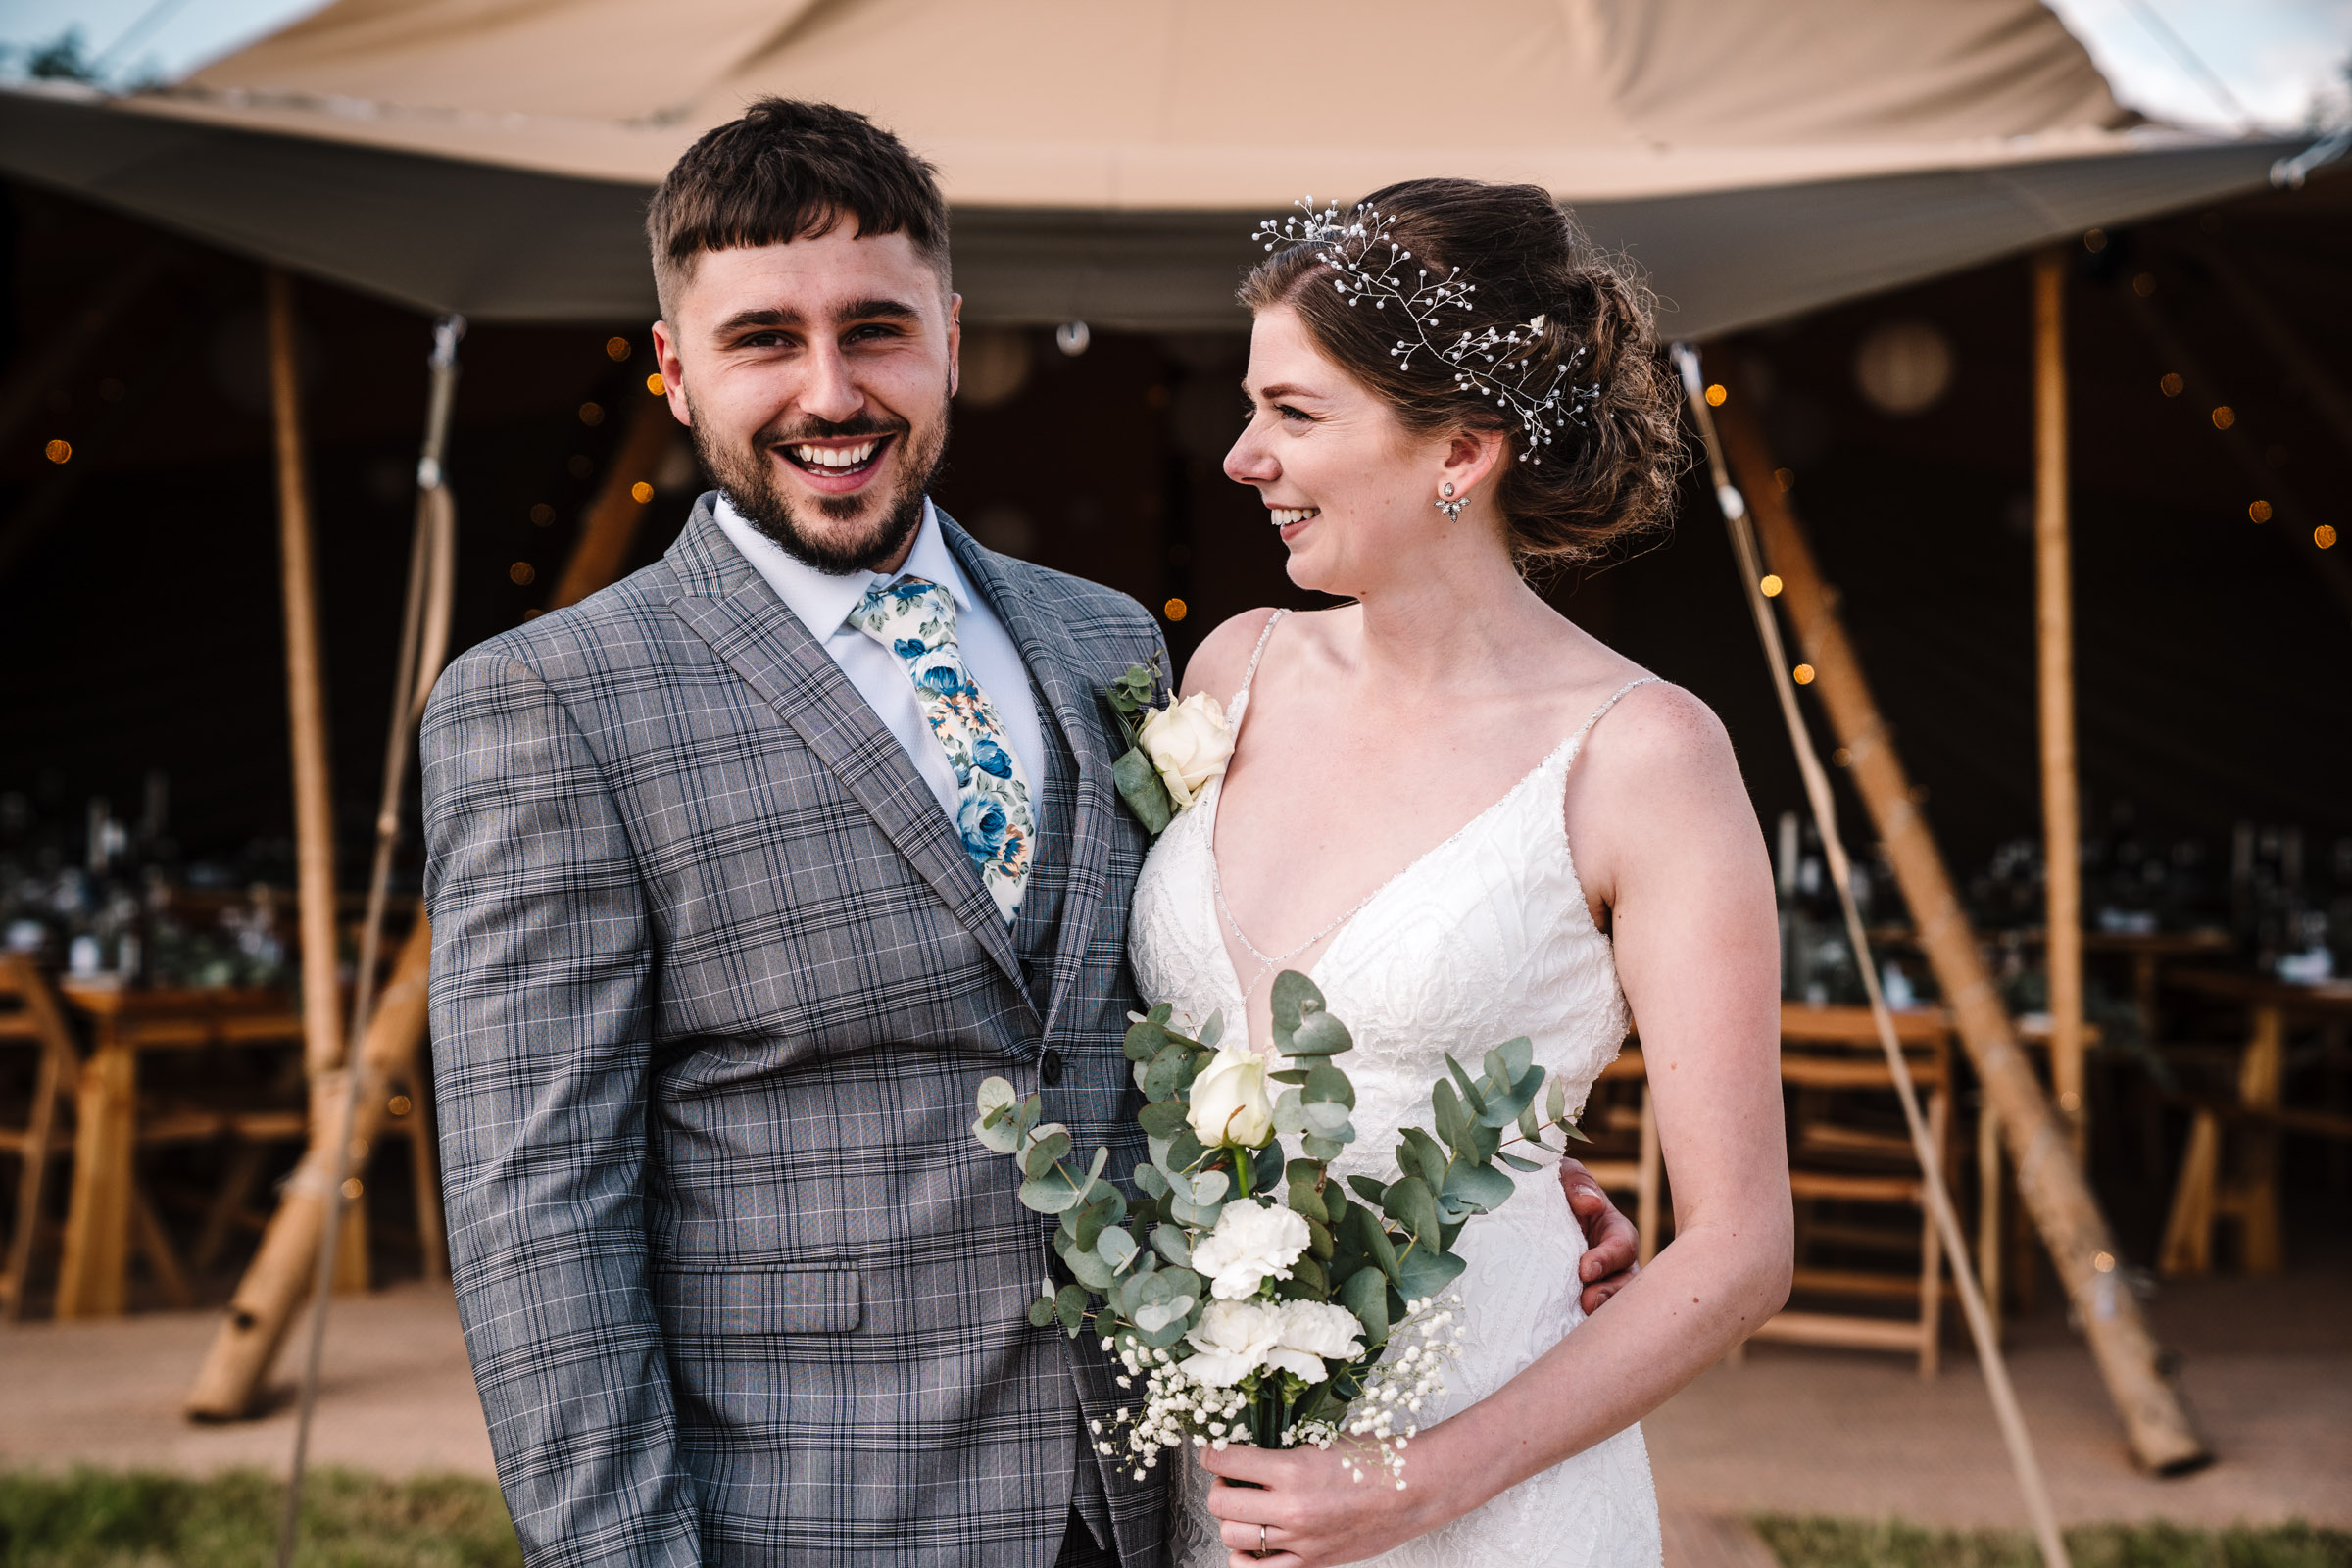 bride and groom standing in front of tipi at outdoor wedding